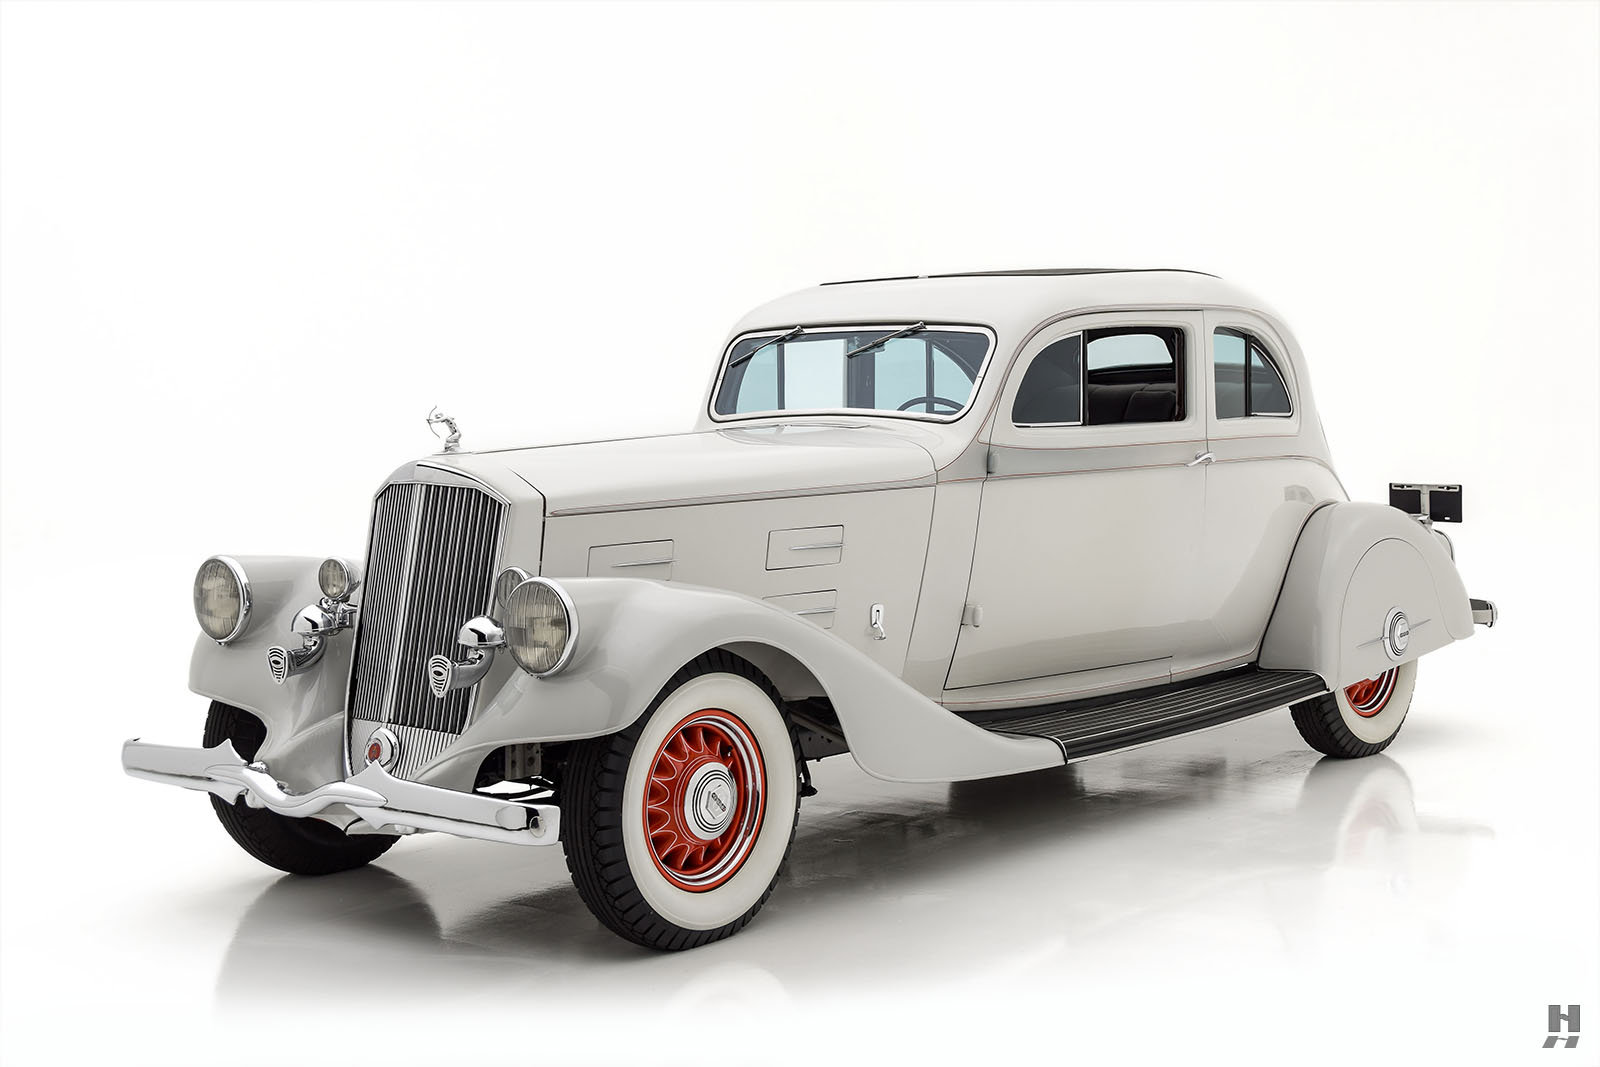 1934 PIERCE ARROW MODEL 840A SILVER ARROW COUPE For Sale (picture 1 of 6)